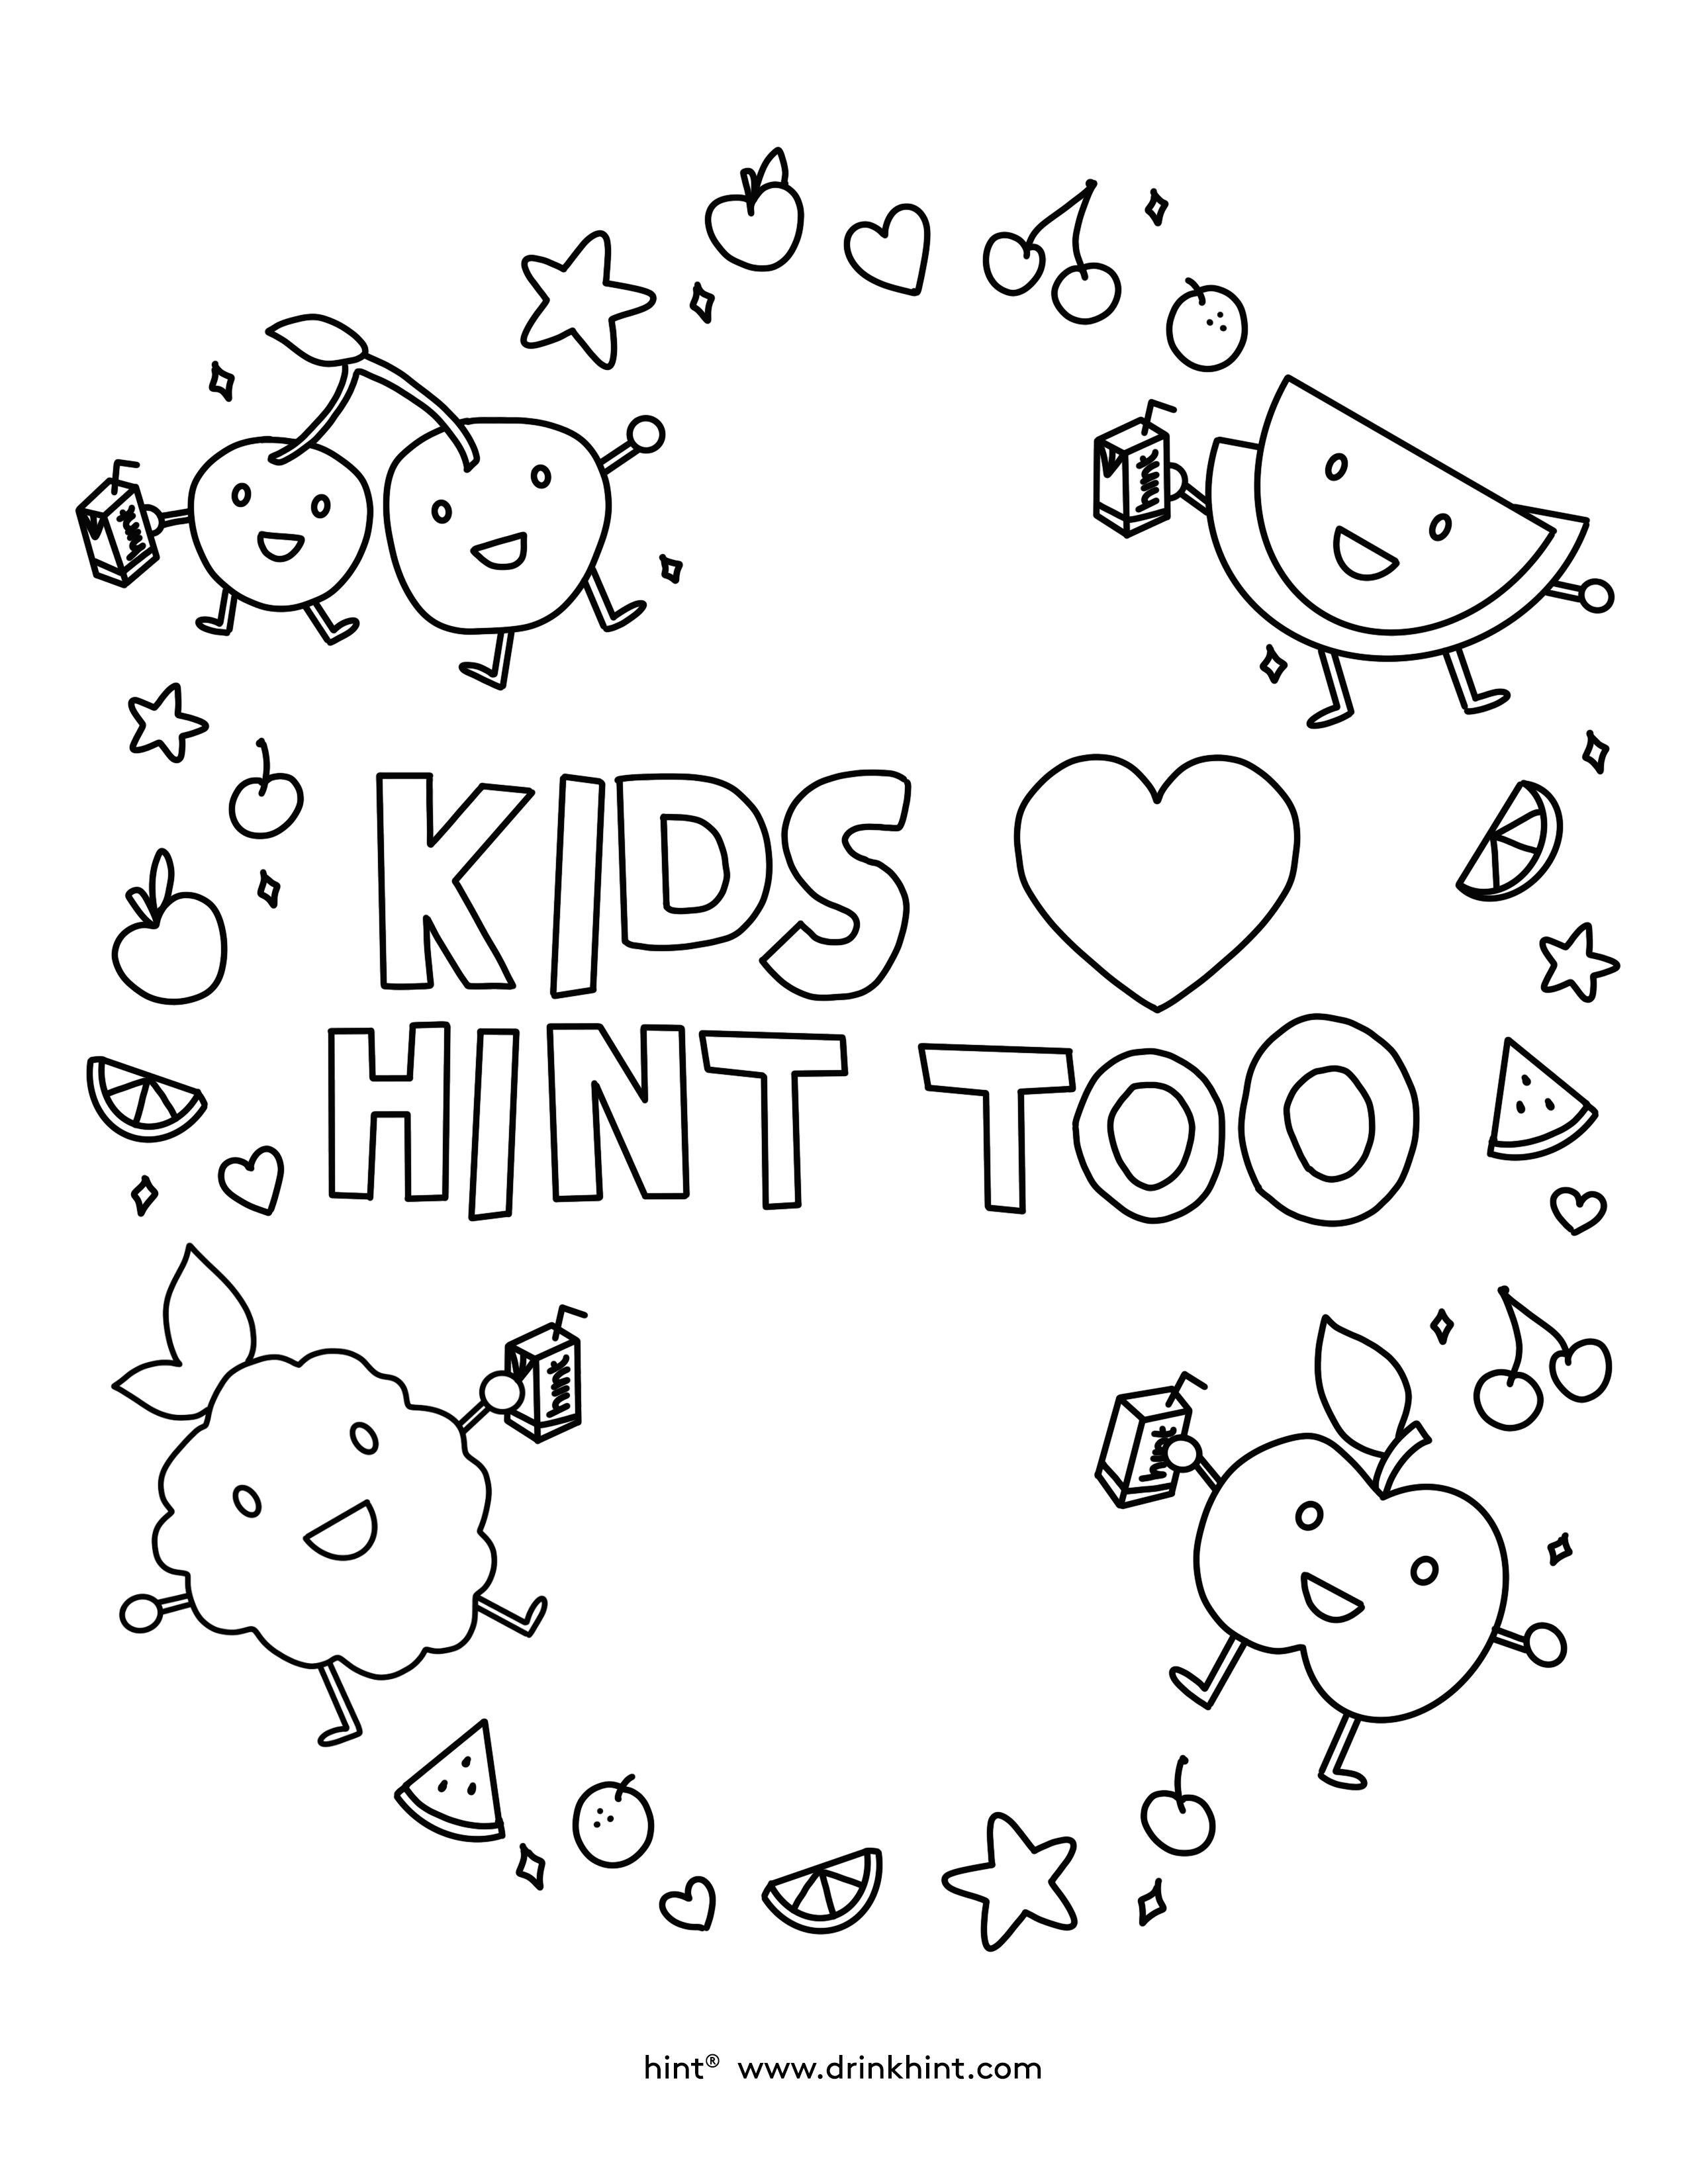 Kids_Love_hint_Too_Coloring_Page.jpeg